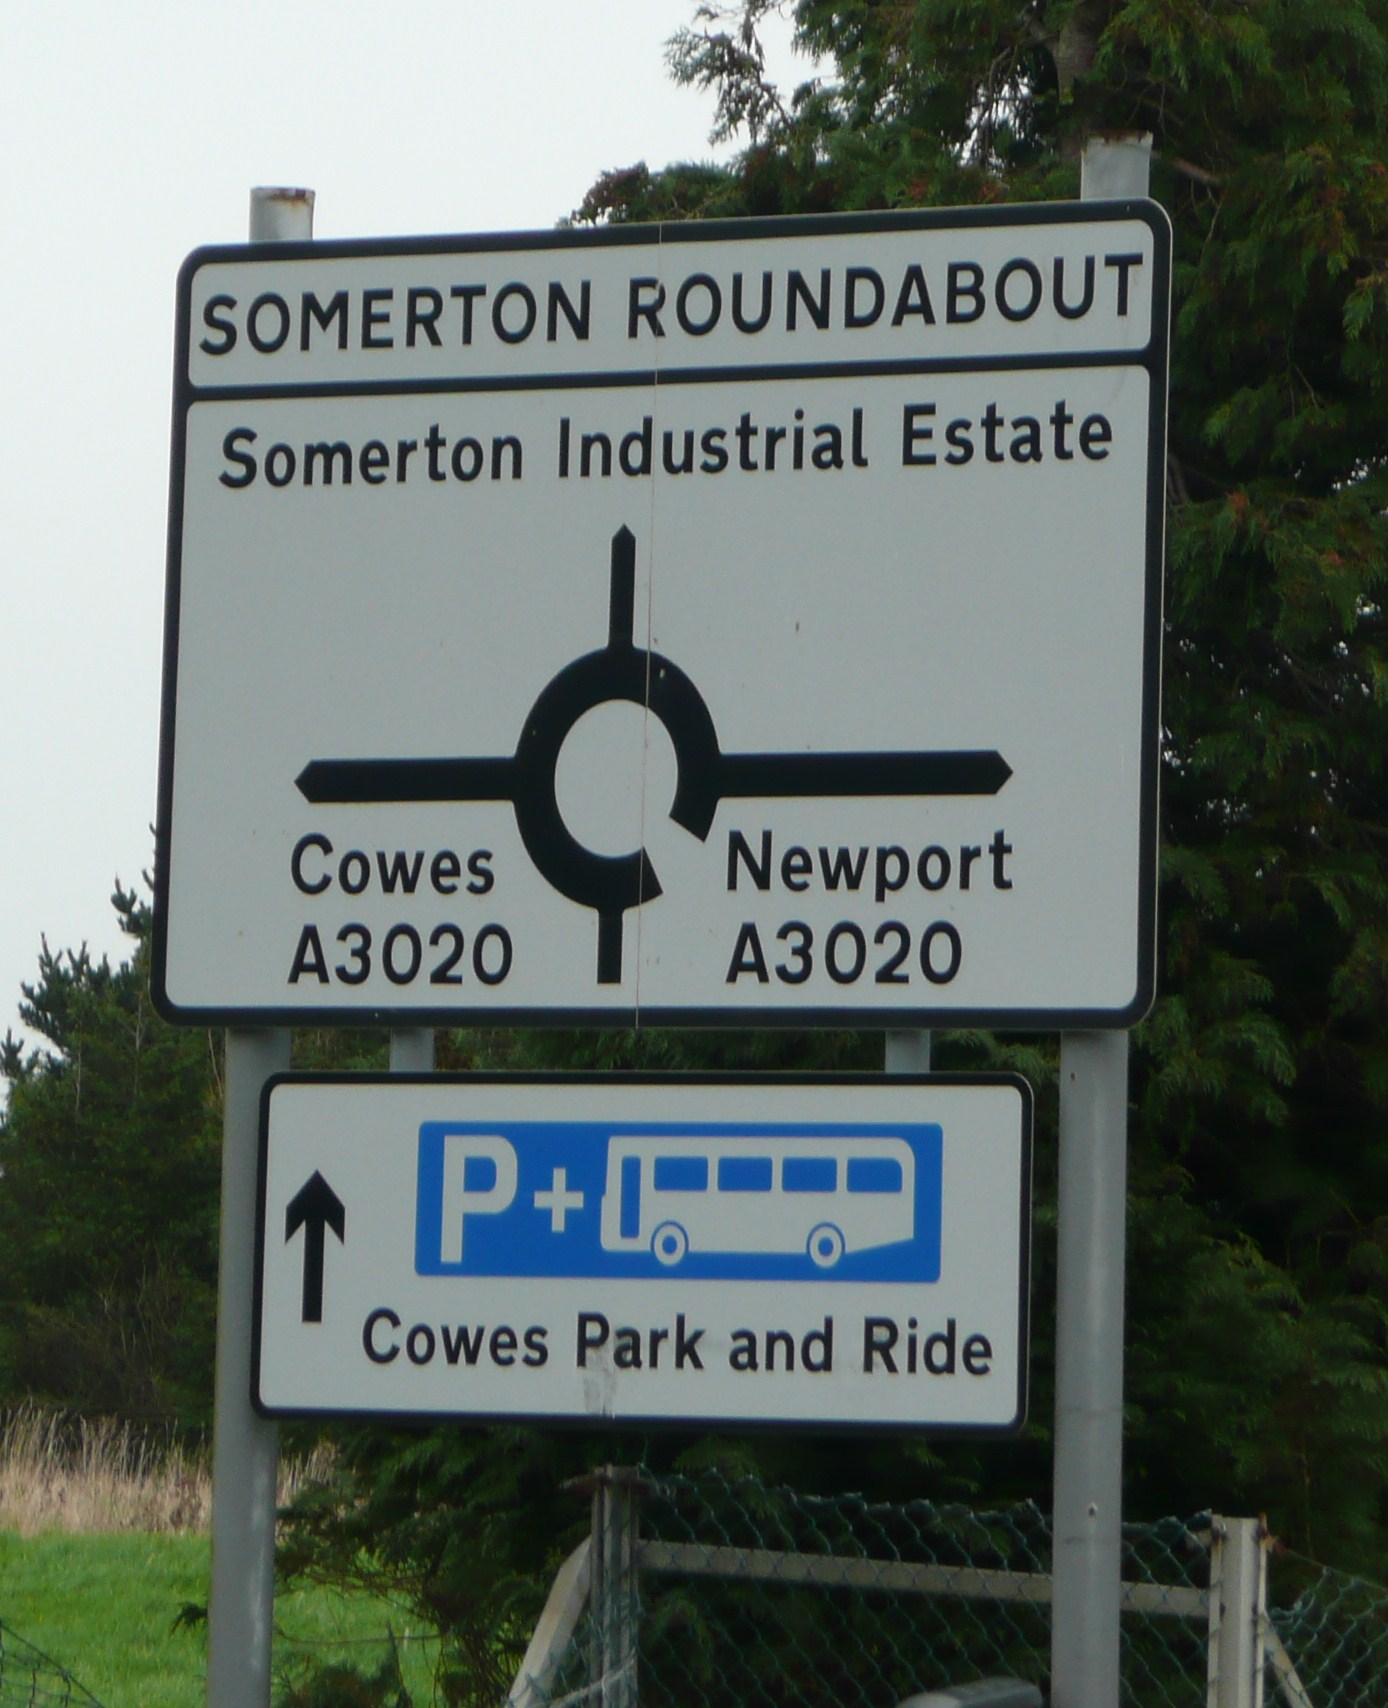 Cowes_Somerton_Roundabout_sign.JPG